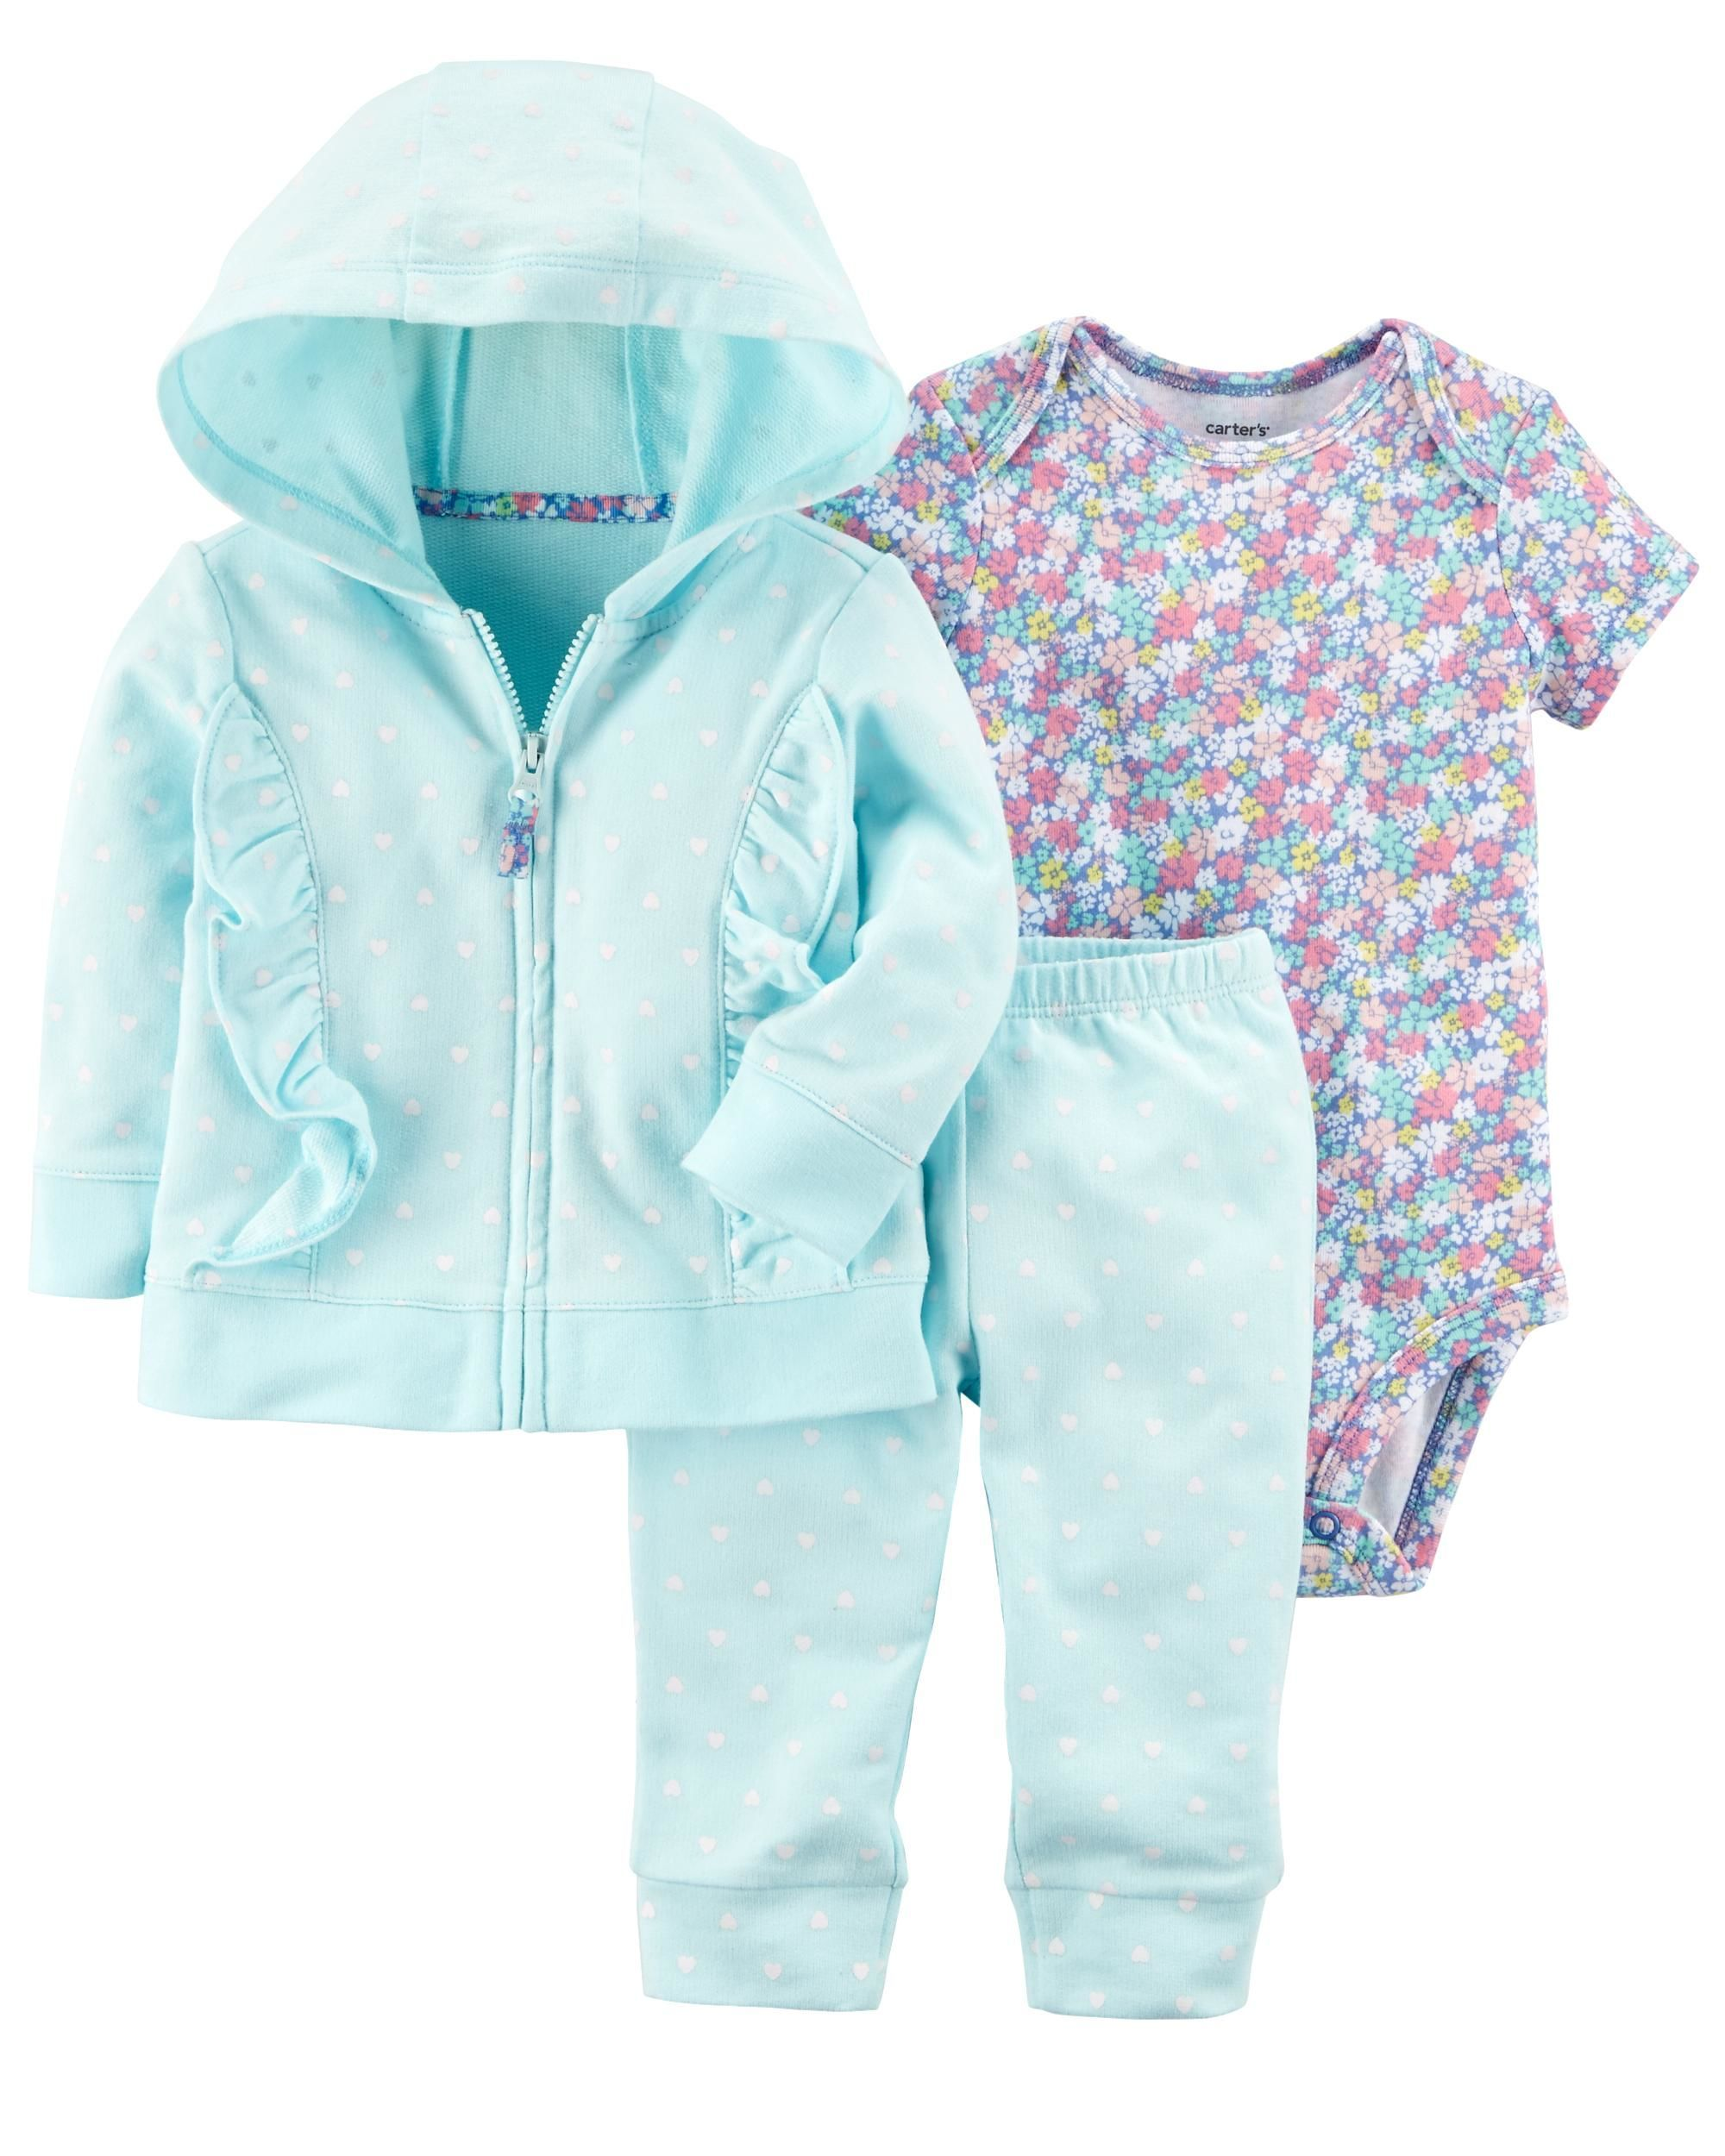 27e075f27 3-Piece Little Jacket Set